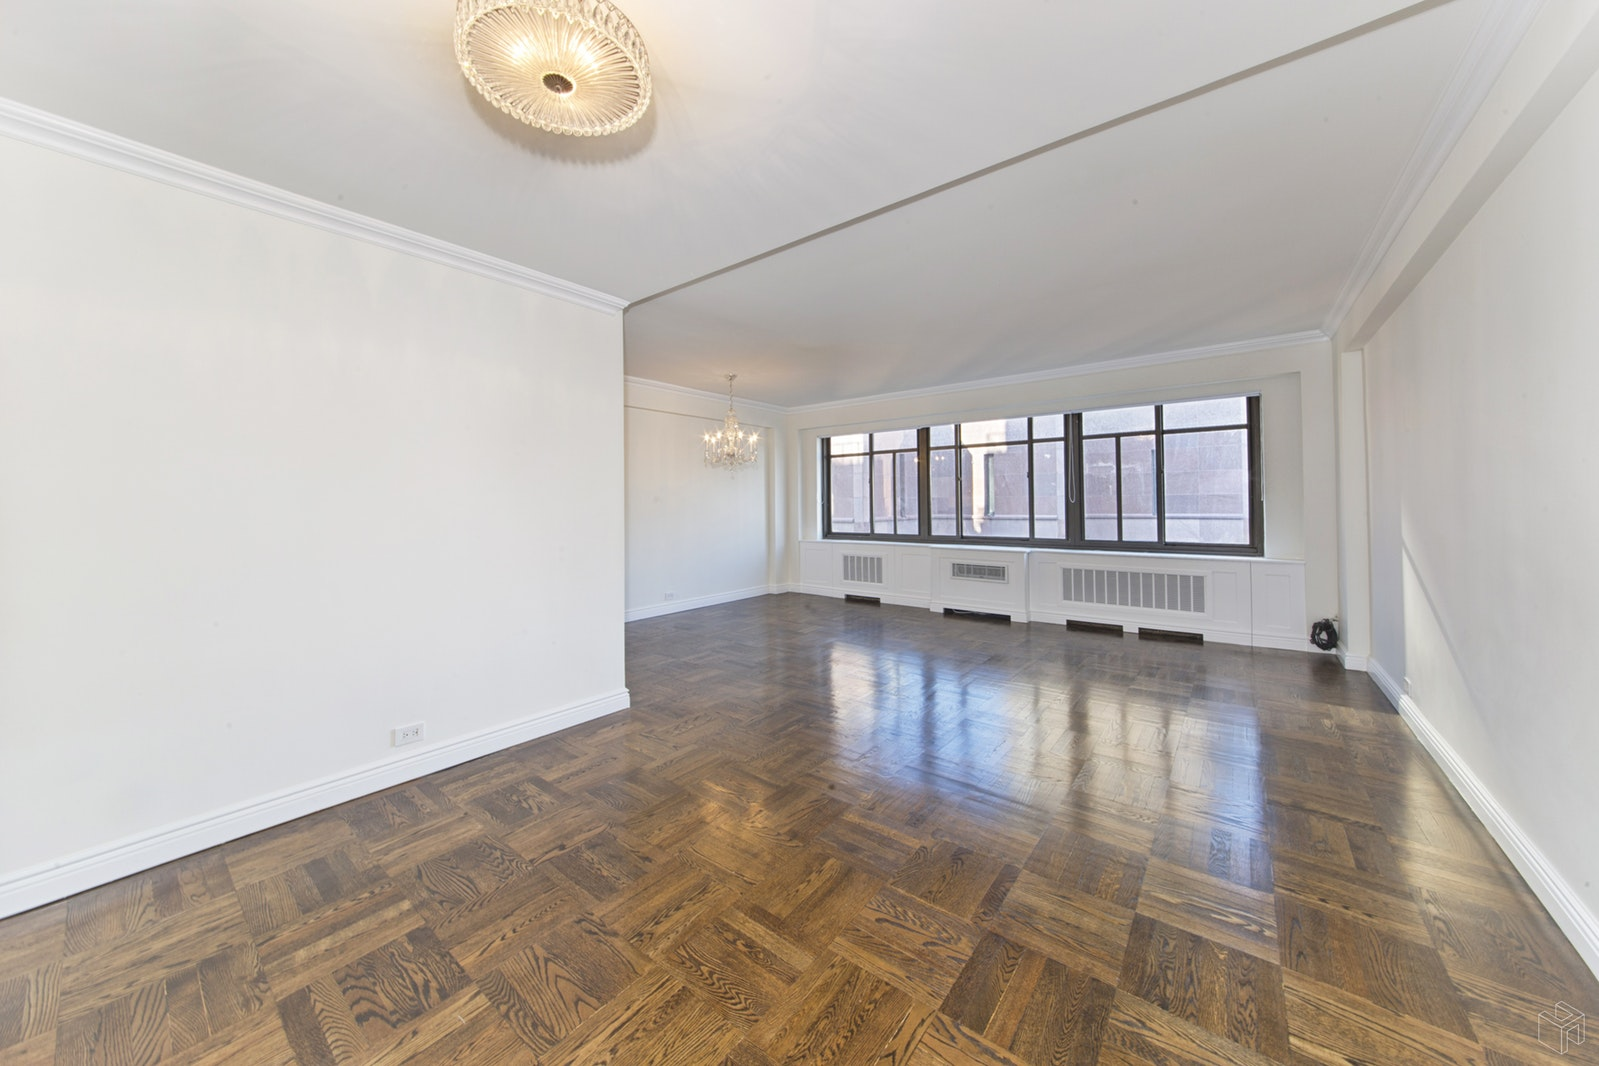 715 Park Avenue 11d, Upper East Side, NYC, 10021, Price Not Disclosed, Rented Property, Halstead Real Estate, Photo 4